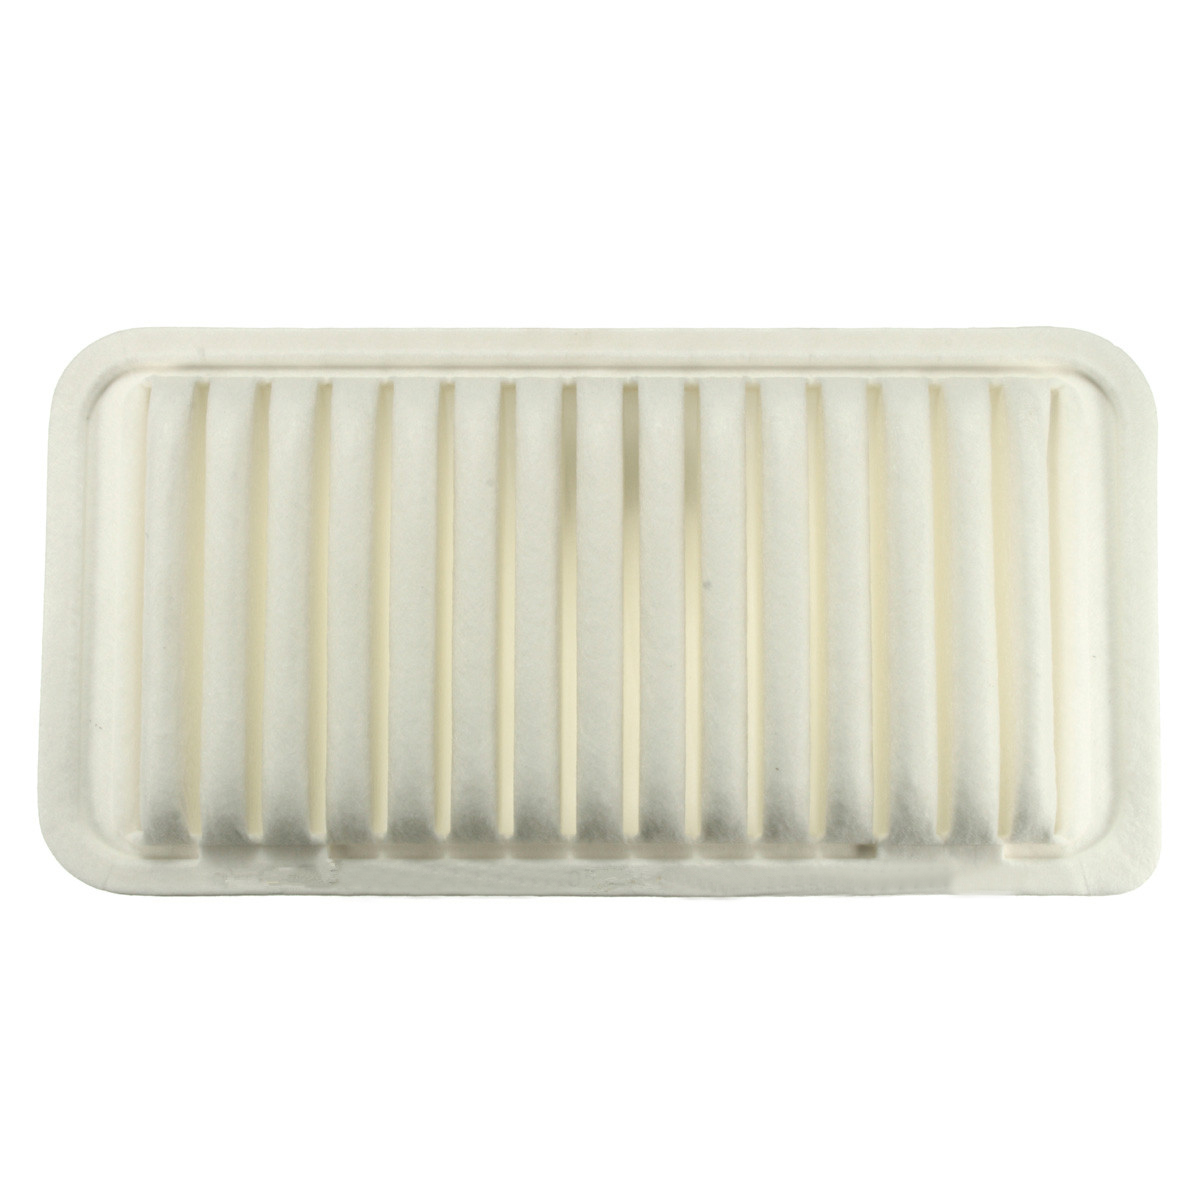 FOR TOYOTA ENGINE AIR FILTER FOR TOYOTA COROLLA 1.8L ENGINE 2003-2008